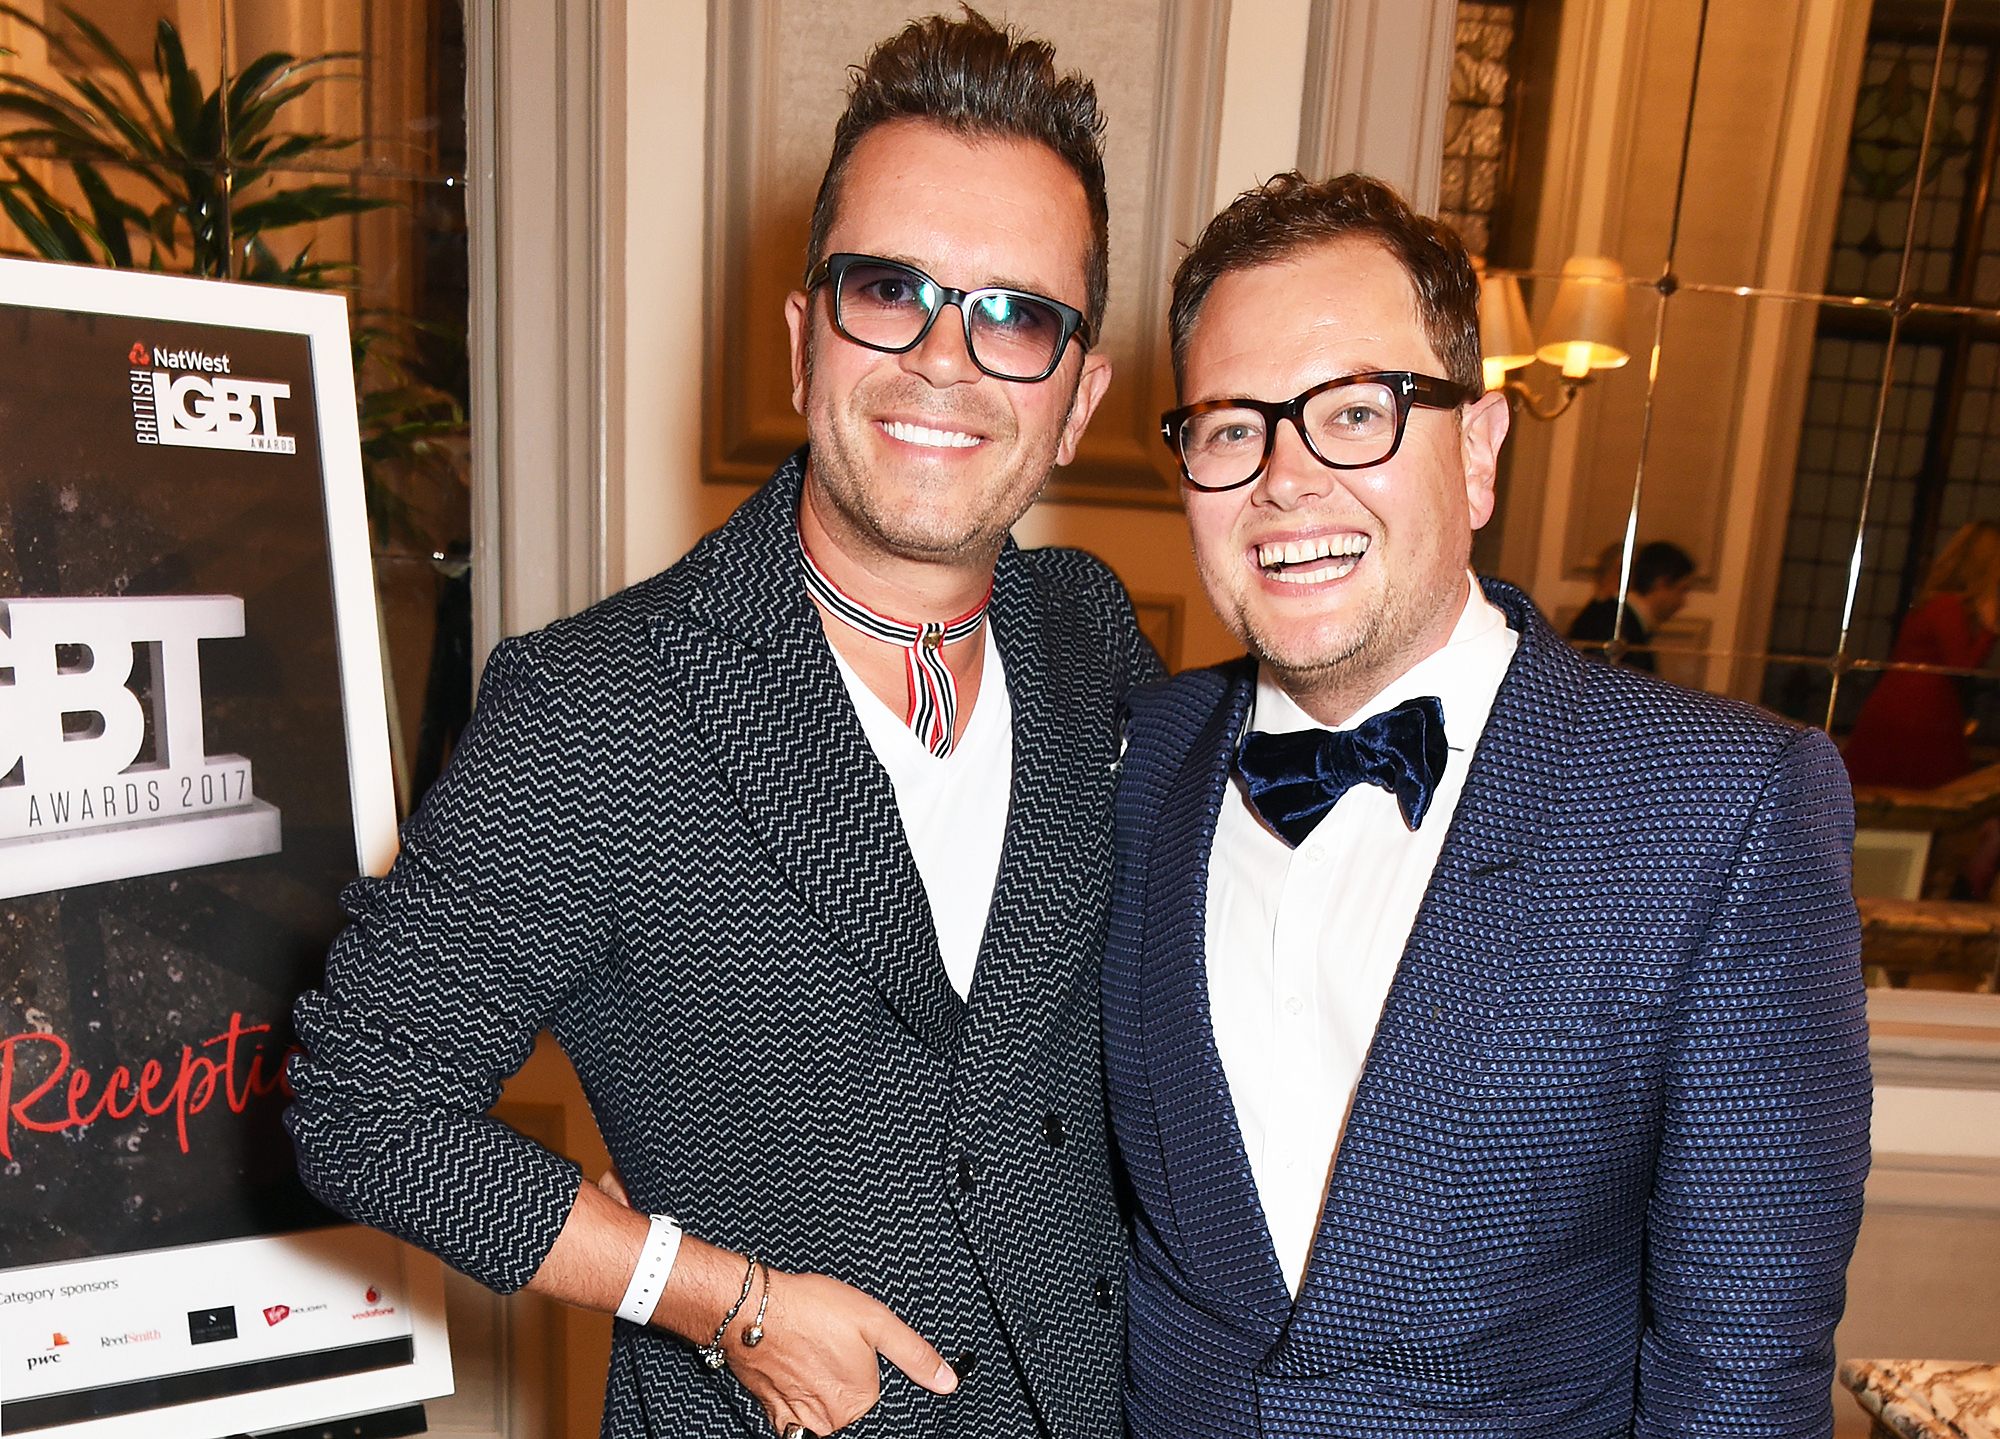 Paul Drayton Alan Carr - Paul Drayton and Alan Carr attend the British LGBT Awards at The Grand Connaught Rooms on May 12, 2017 in London, England.